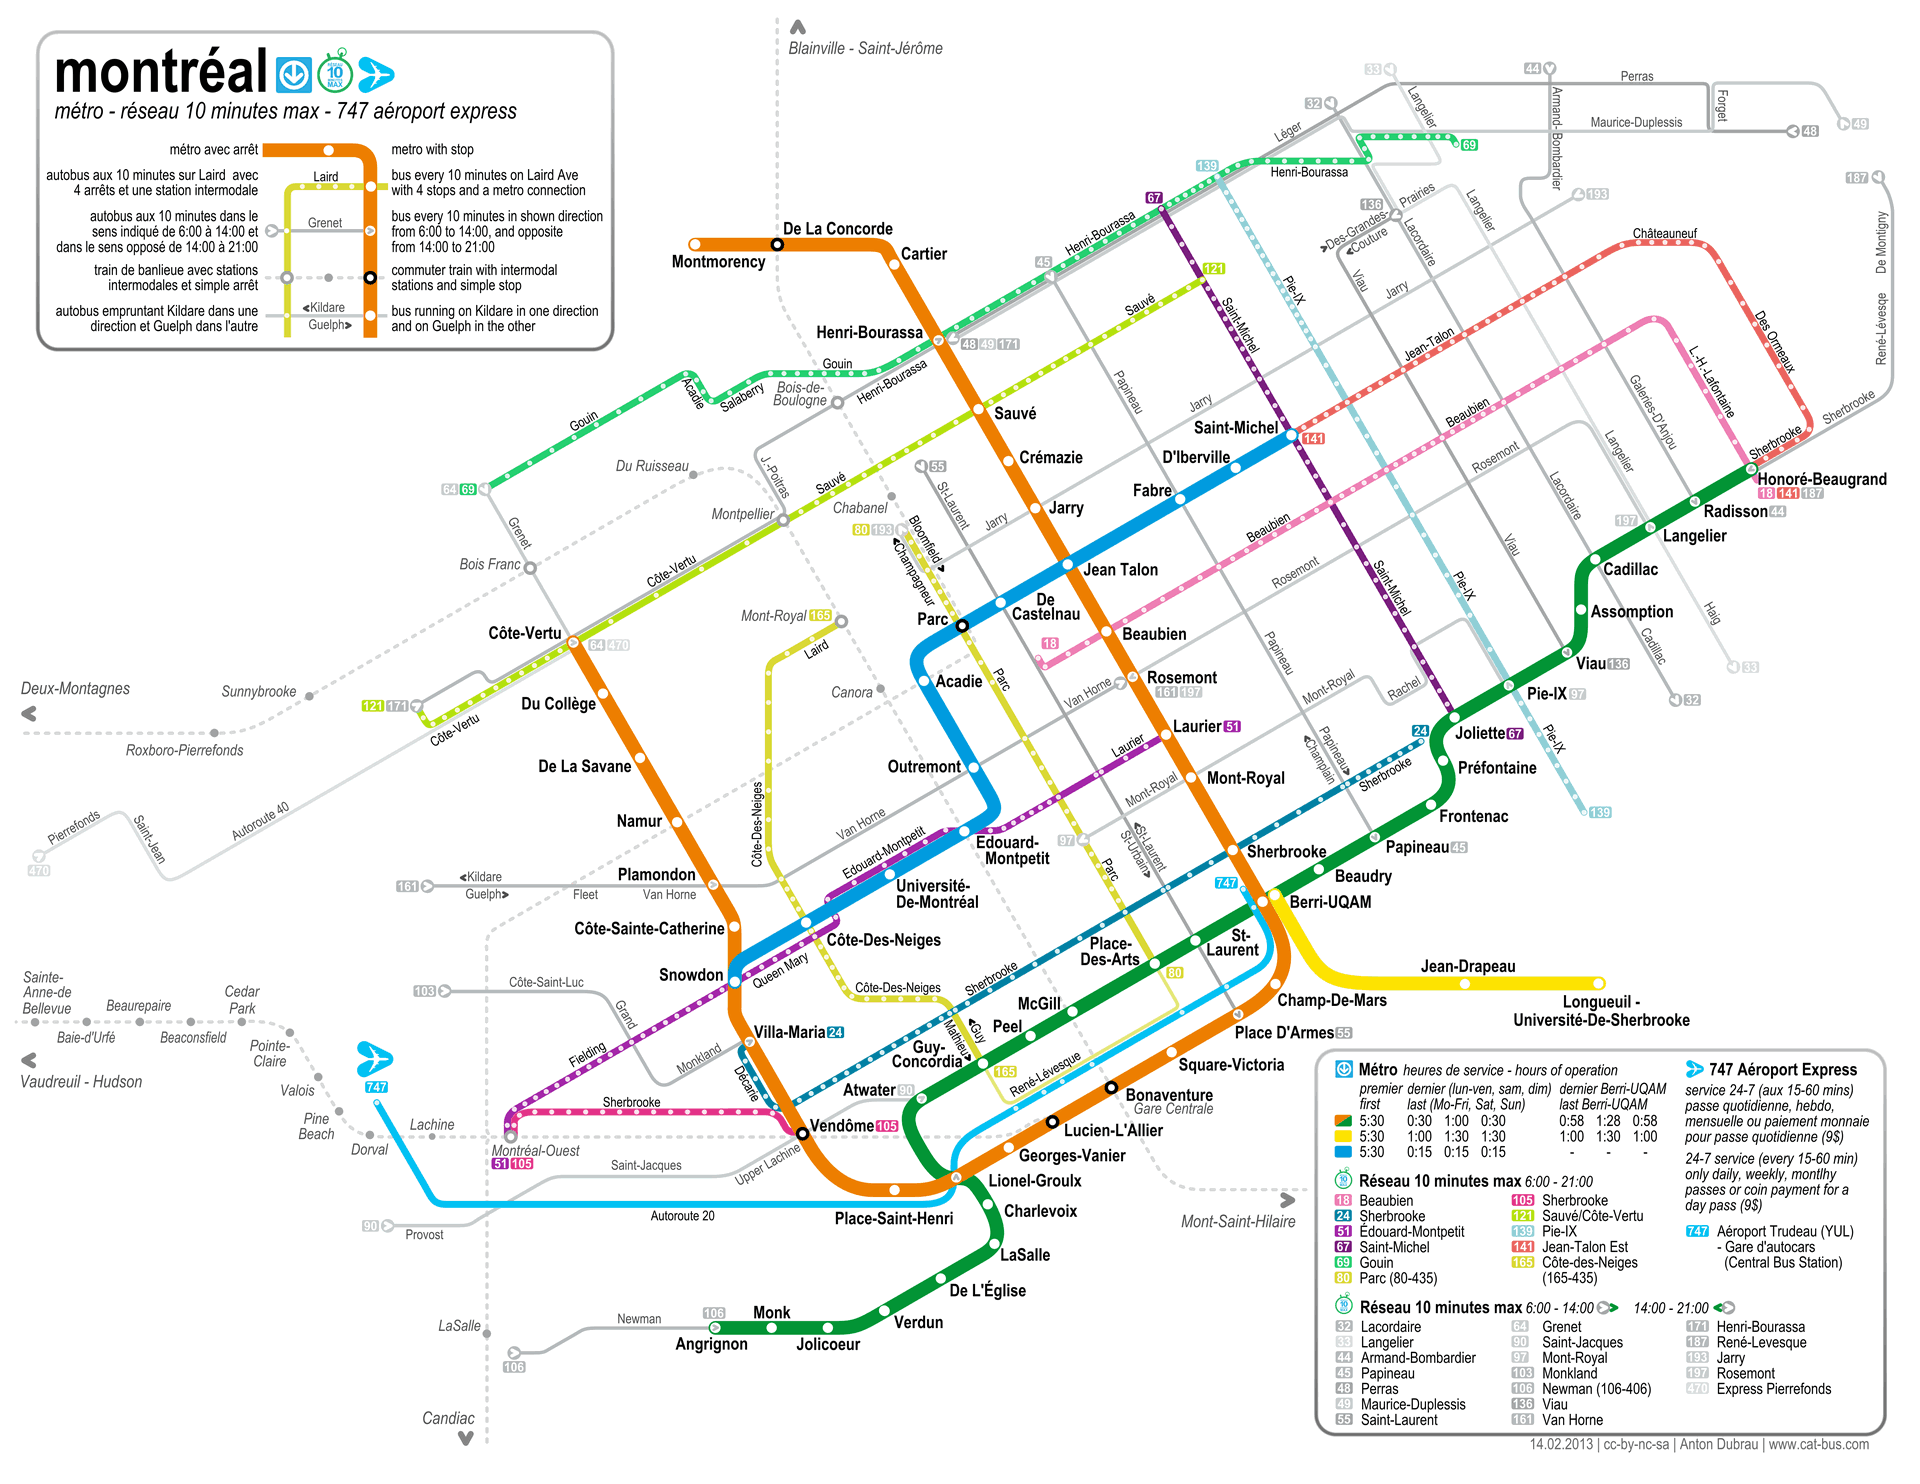 Subway Montreal Map.Montreal Metro Map And System Guide For Travelers